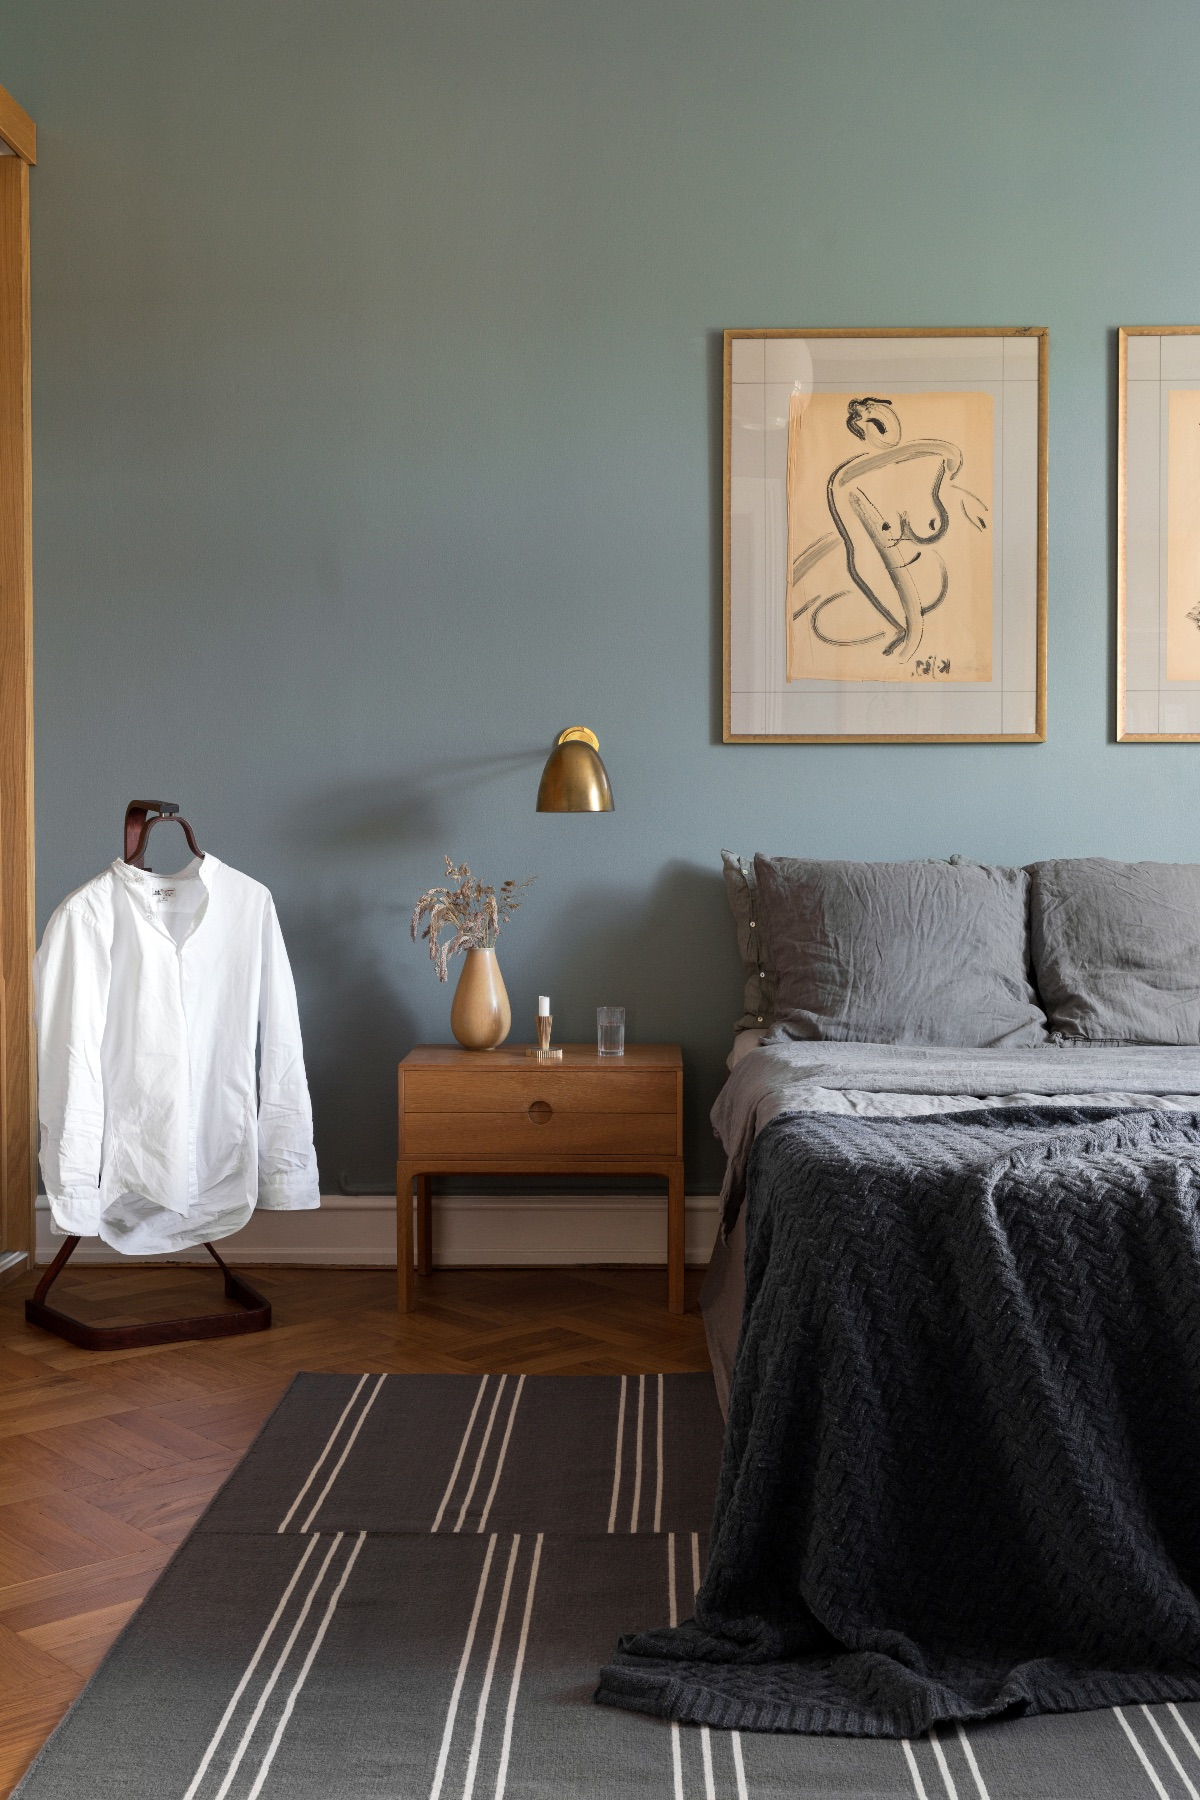 Flatweave rug Stripes in color Gray styled in a cozy bedroom with teal walls.